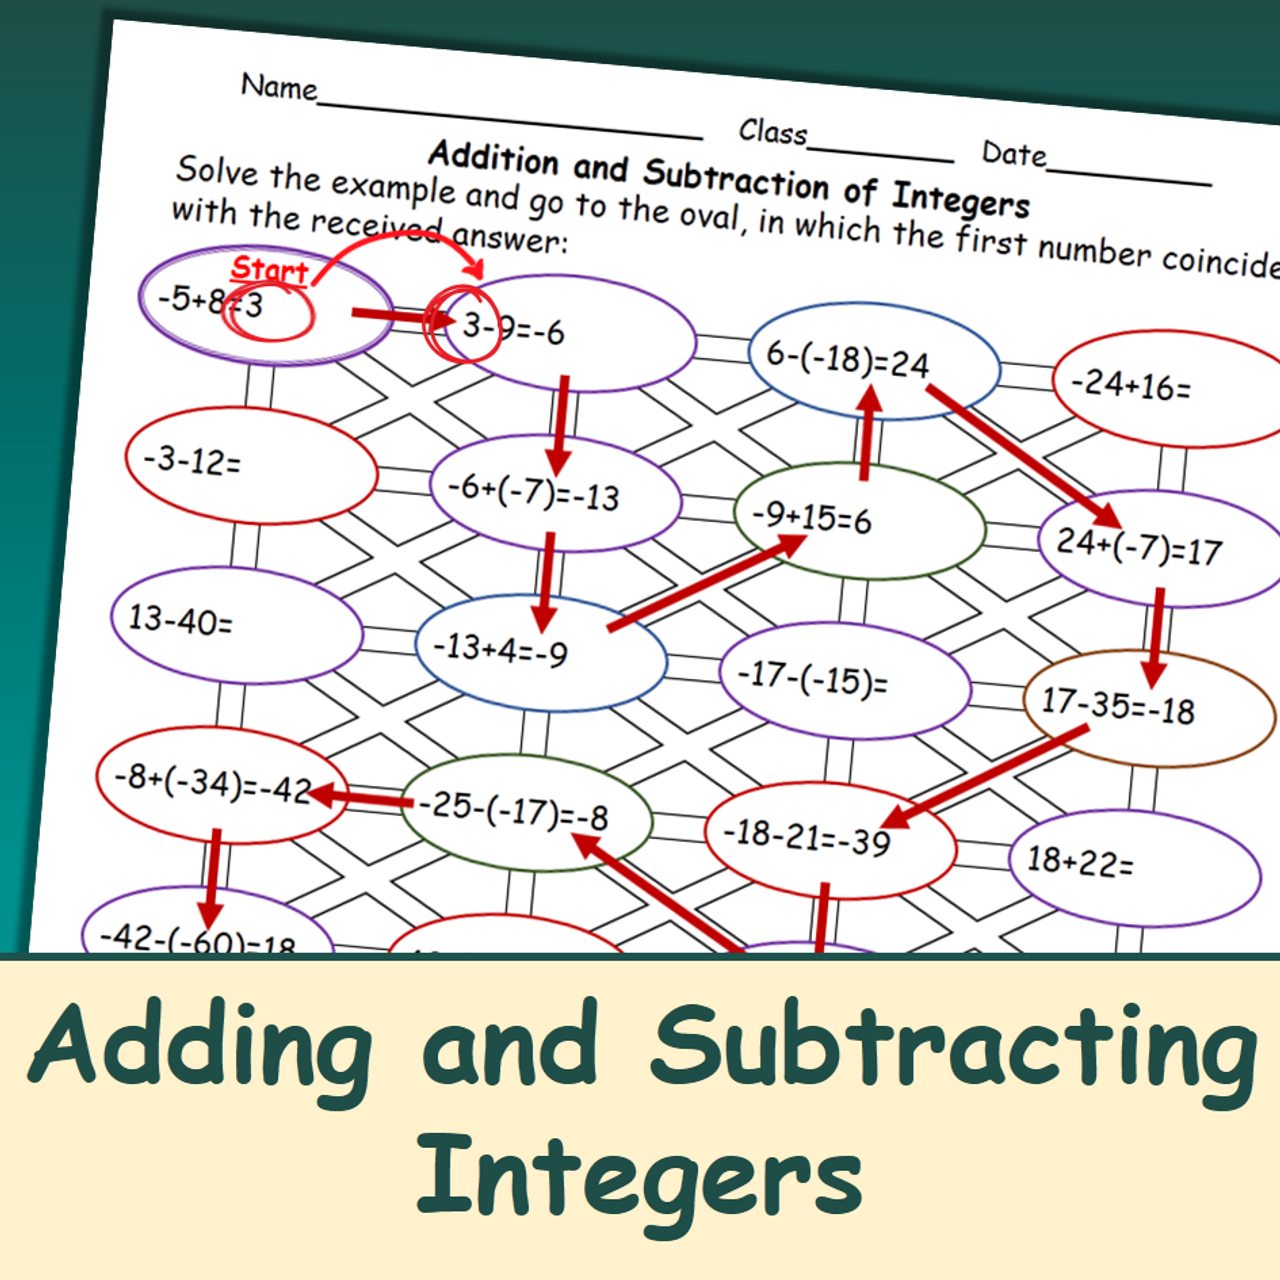 - Adding And Subtracting Integers Maze - Amped Up Learning